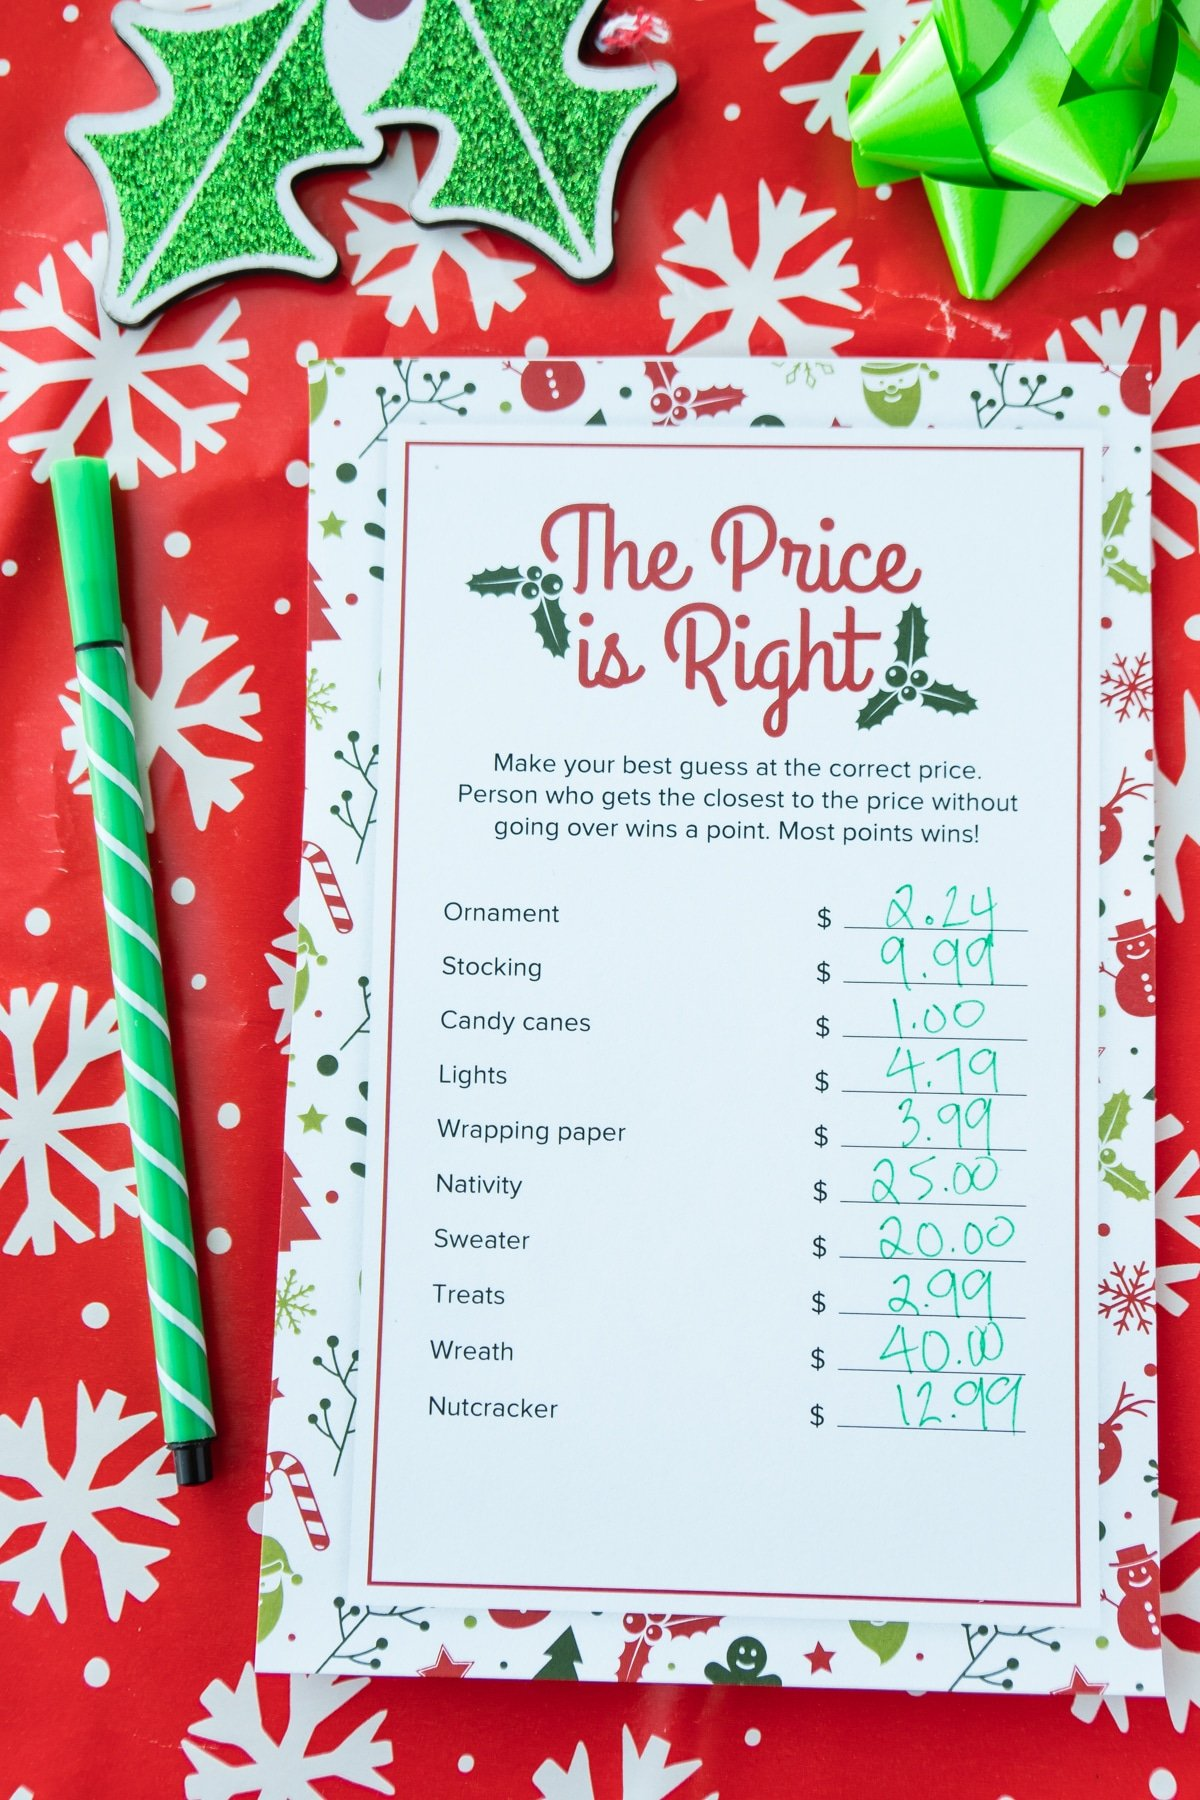 Christmas price is right game with prices written down